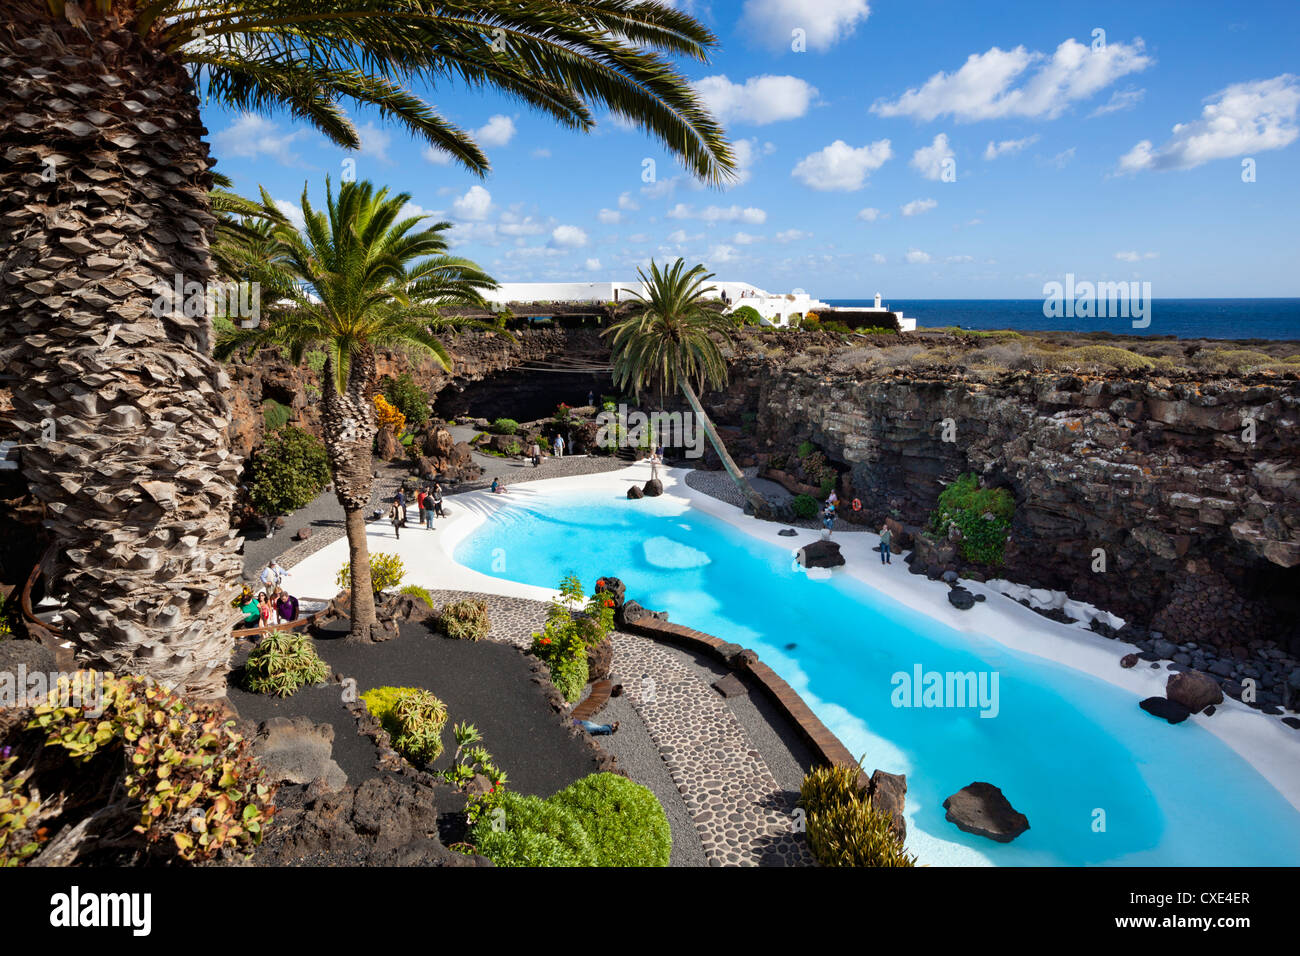 Blue and white pool, Jameos del Agua, near Arrieta, Lanzarote, Canary Islands, Spain - Stock Image